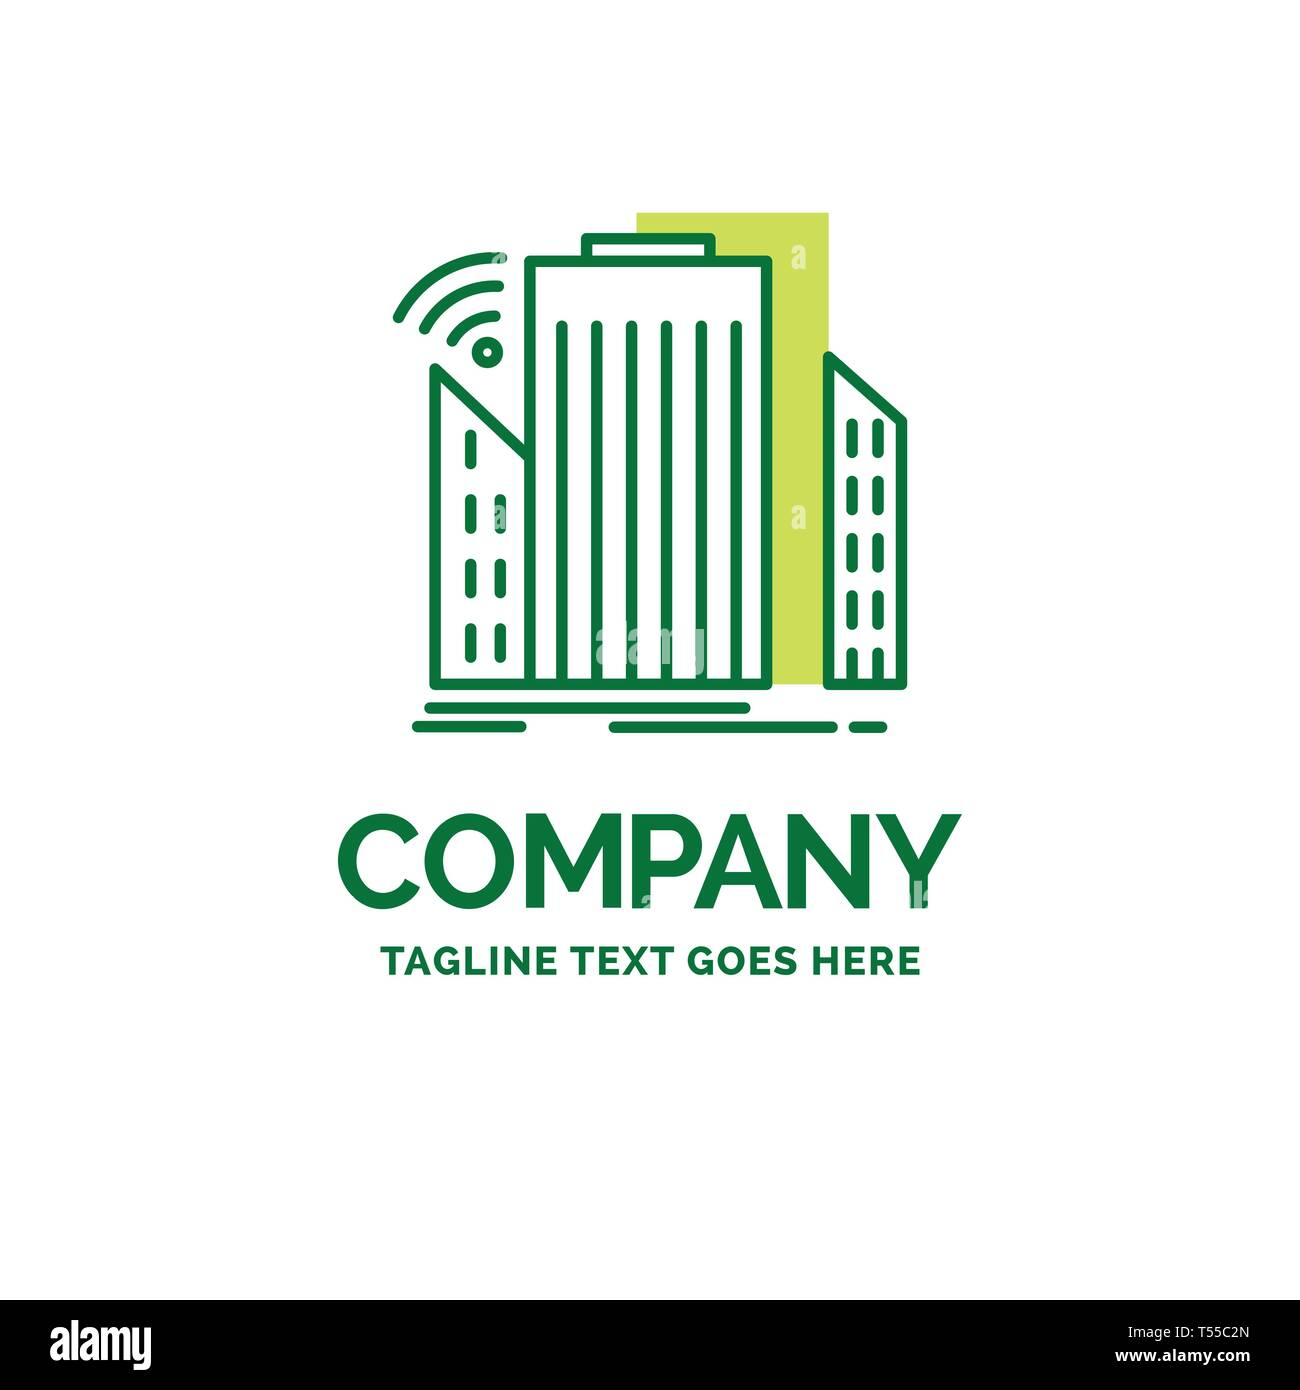 Buildings, city, sensor, smart, urban Flat Business Logo template. Creative Green Brand Name Design. - Stock Vector